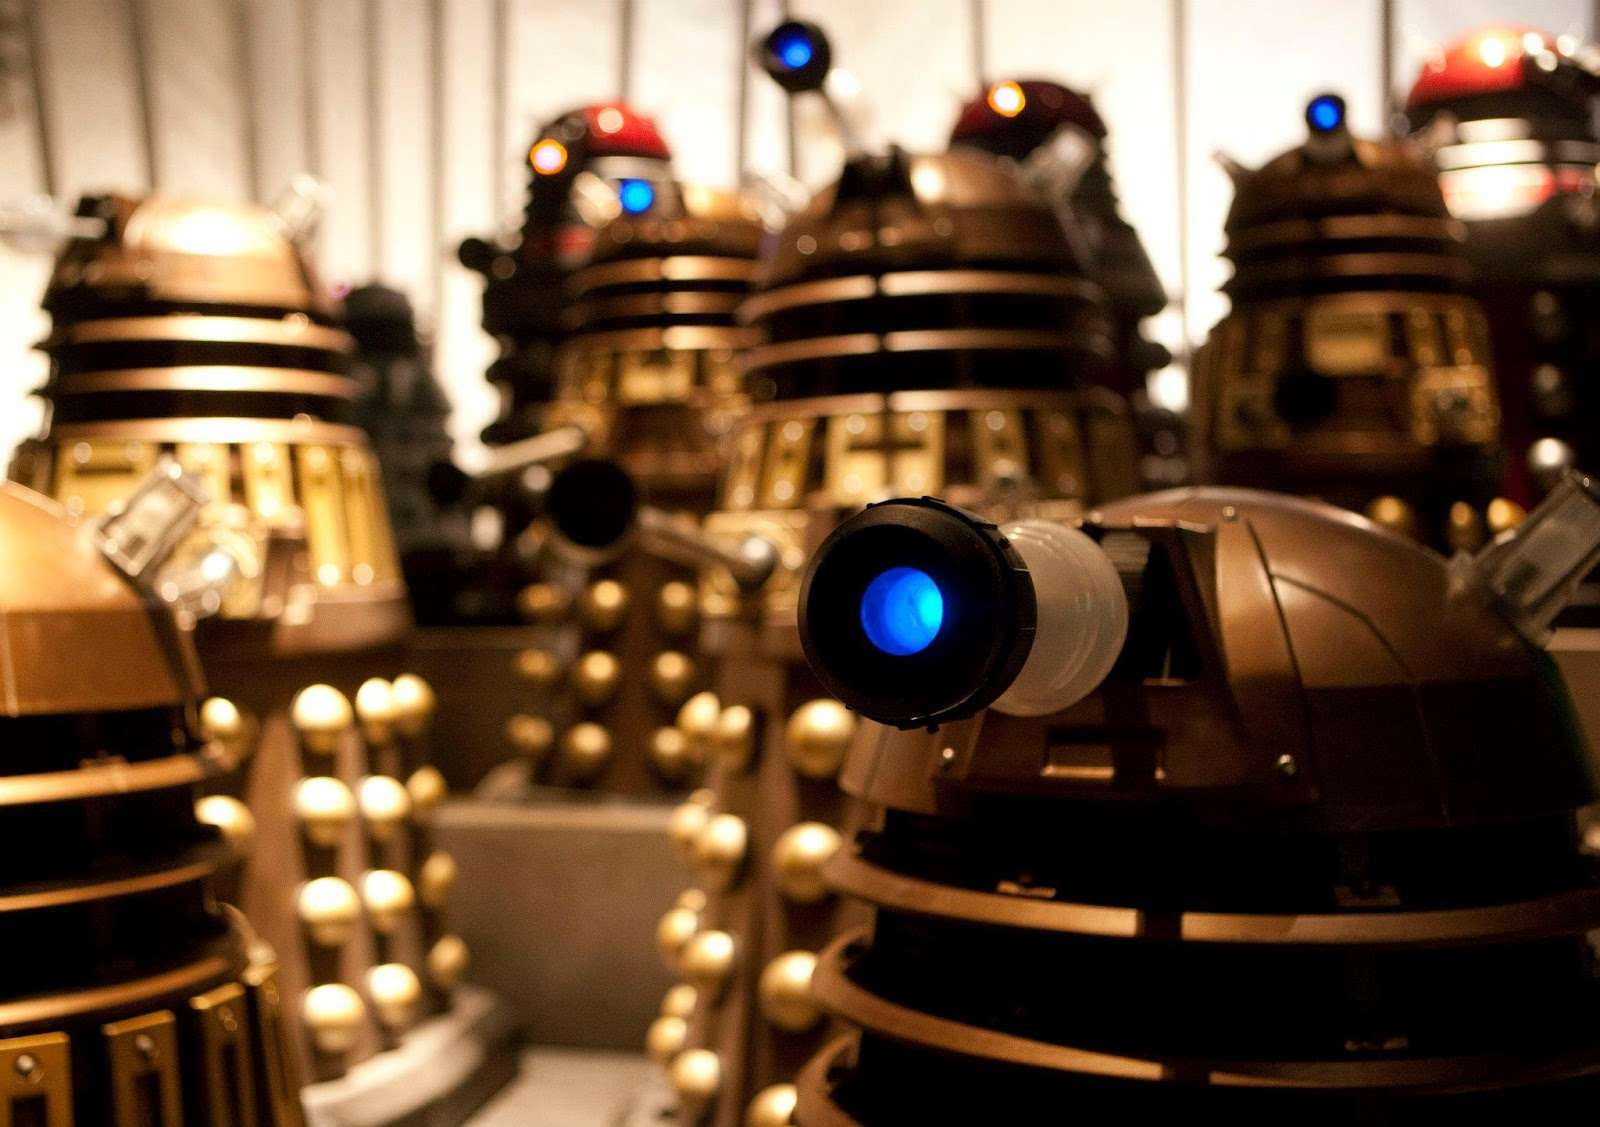 Doctor Who series 7 - Asylum of the Daleks